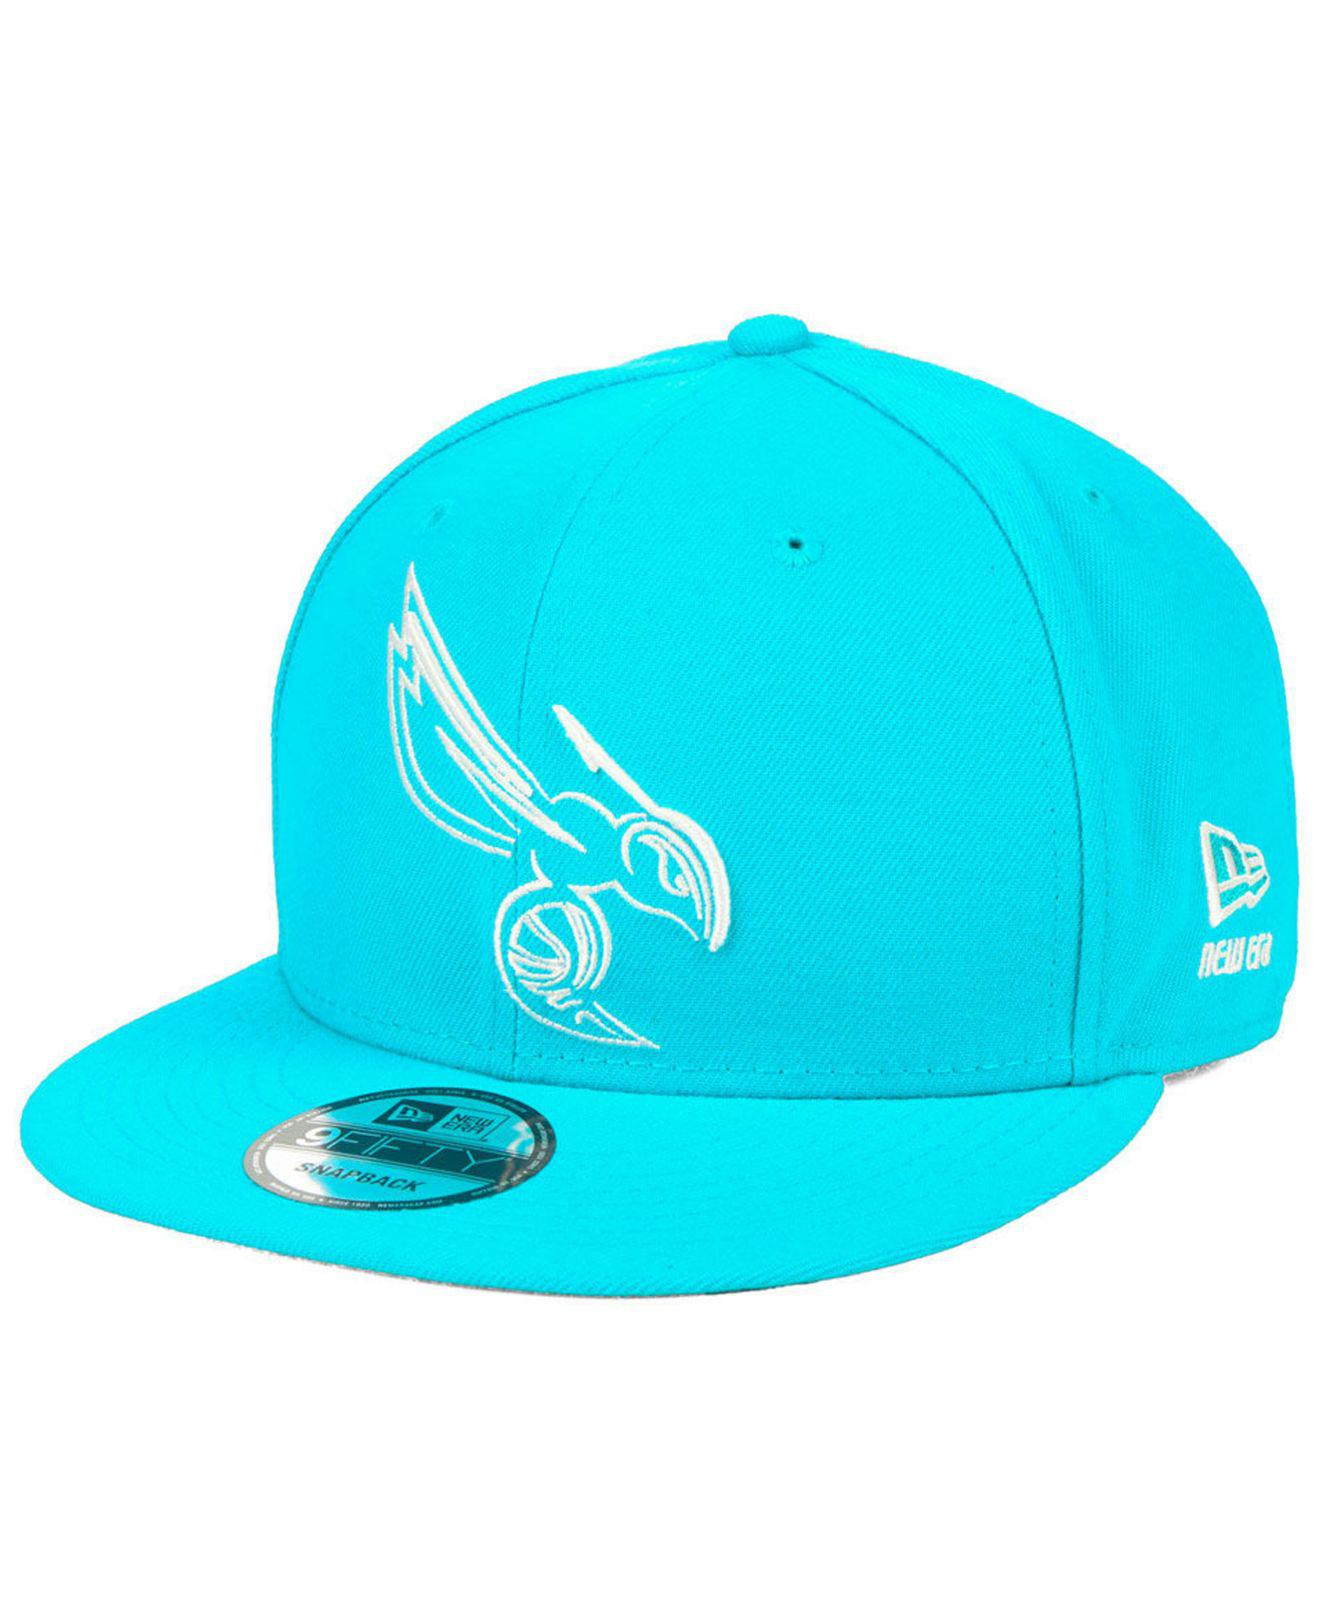 huge selection of 61a9c 44bb7 ... hot ktz. mens blue charlotte hornets logo trace 9fifty snapback cap  817dc b6a04